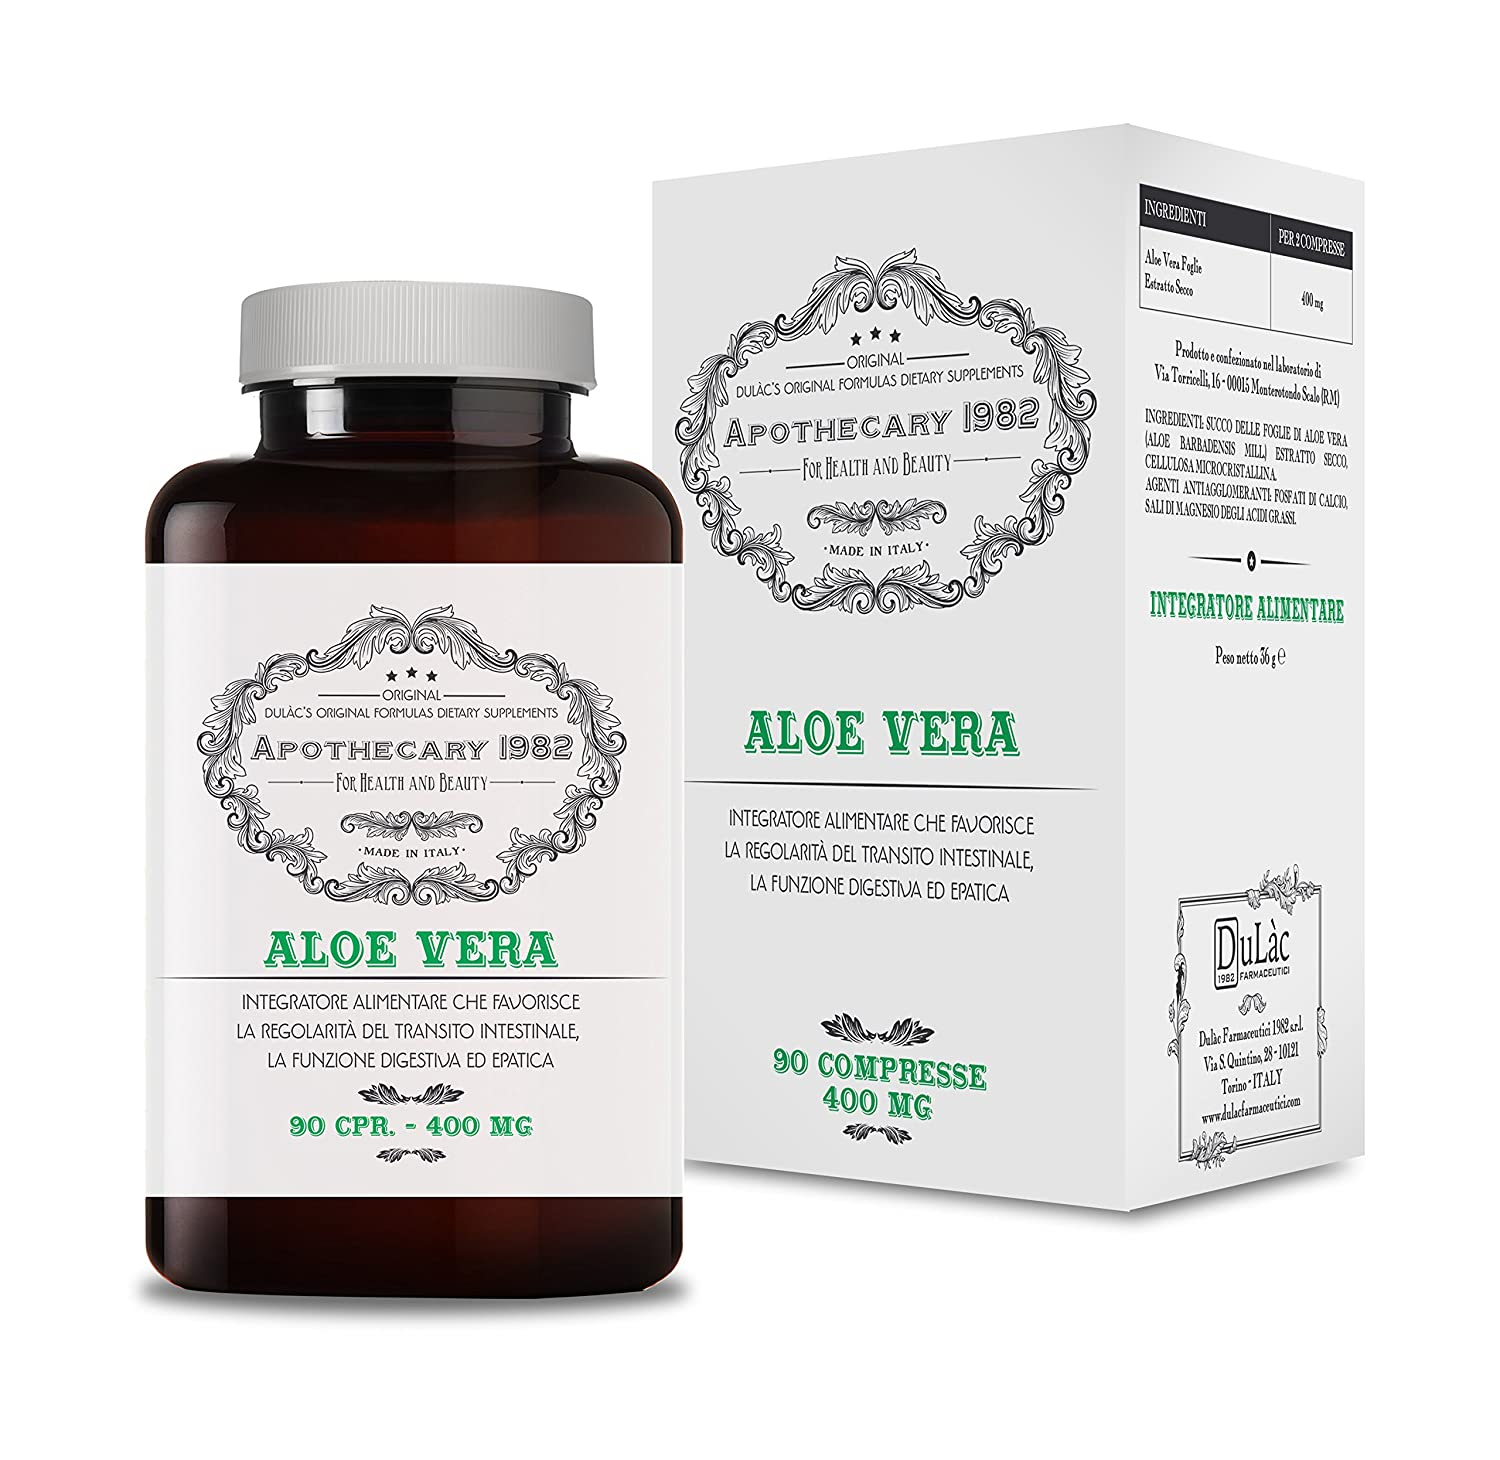 Amazon.com: Apothecary 1982 - Aloe Vera - 90 Tablets - Detox Action - to Help You Lose Weight (Combined with a Healthy Diet and Physical Activity) - 100% ...